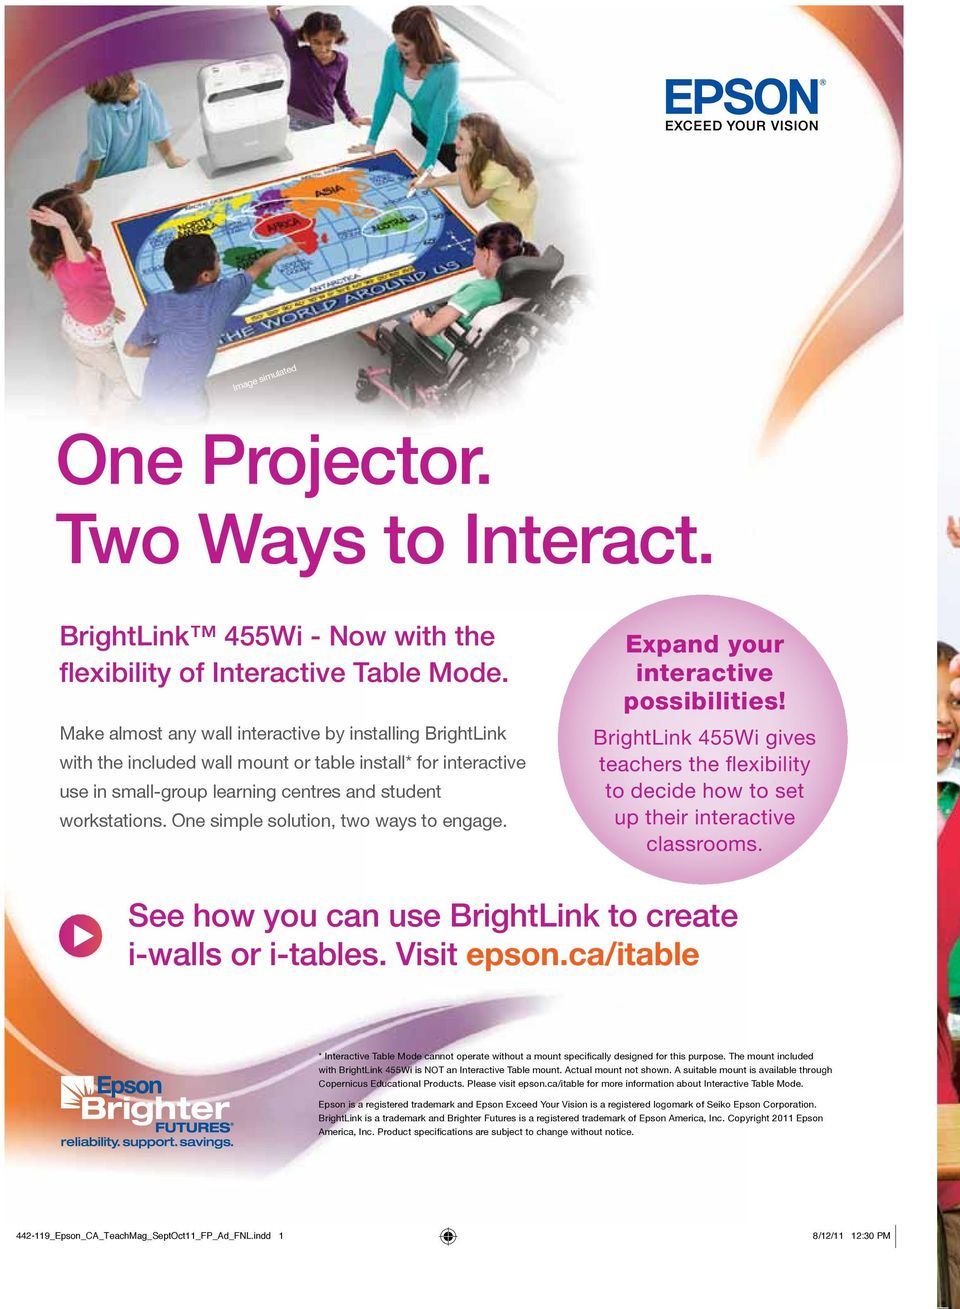 One simple solution, two ways to engage. Expand your interactive possibilities! BrightLink 455Wi gives teachers the fl exibility to decide how to set up their interactive classrooms.